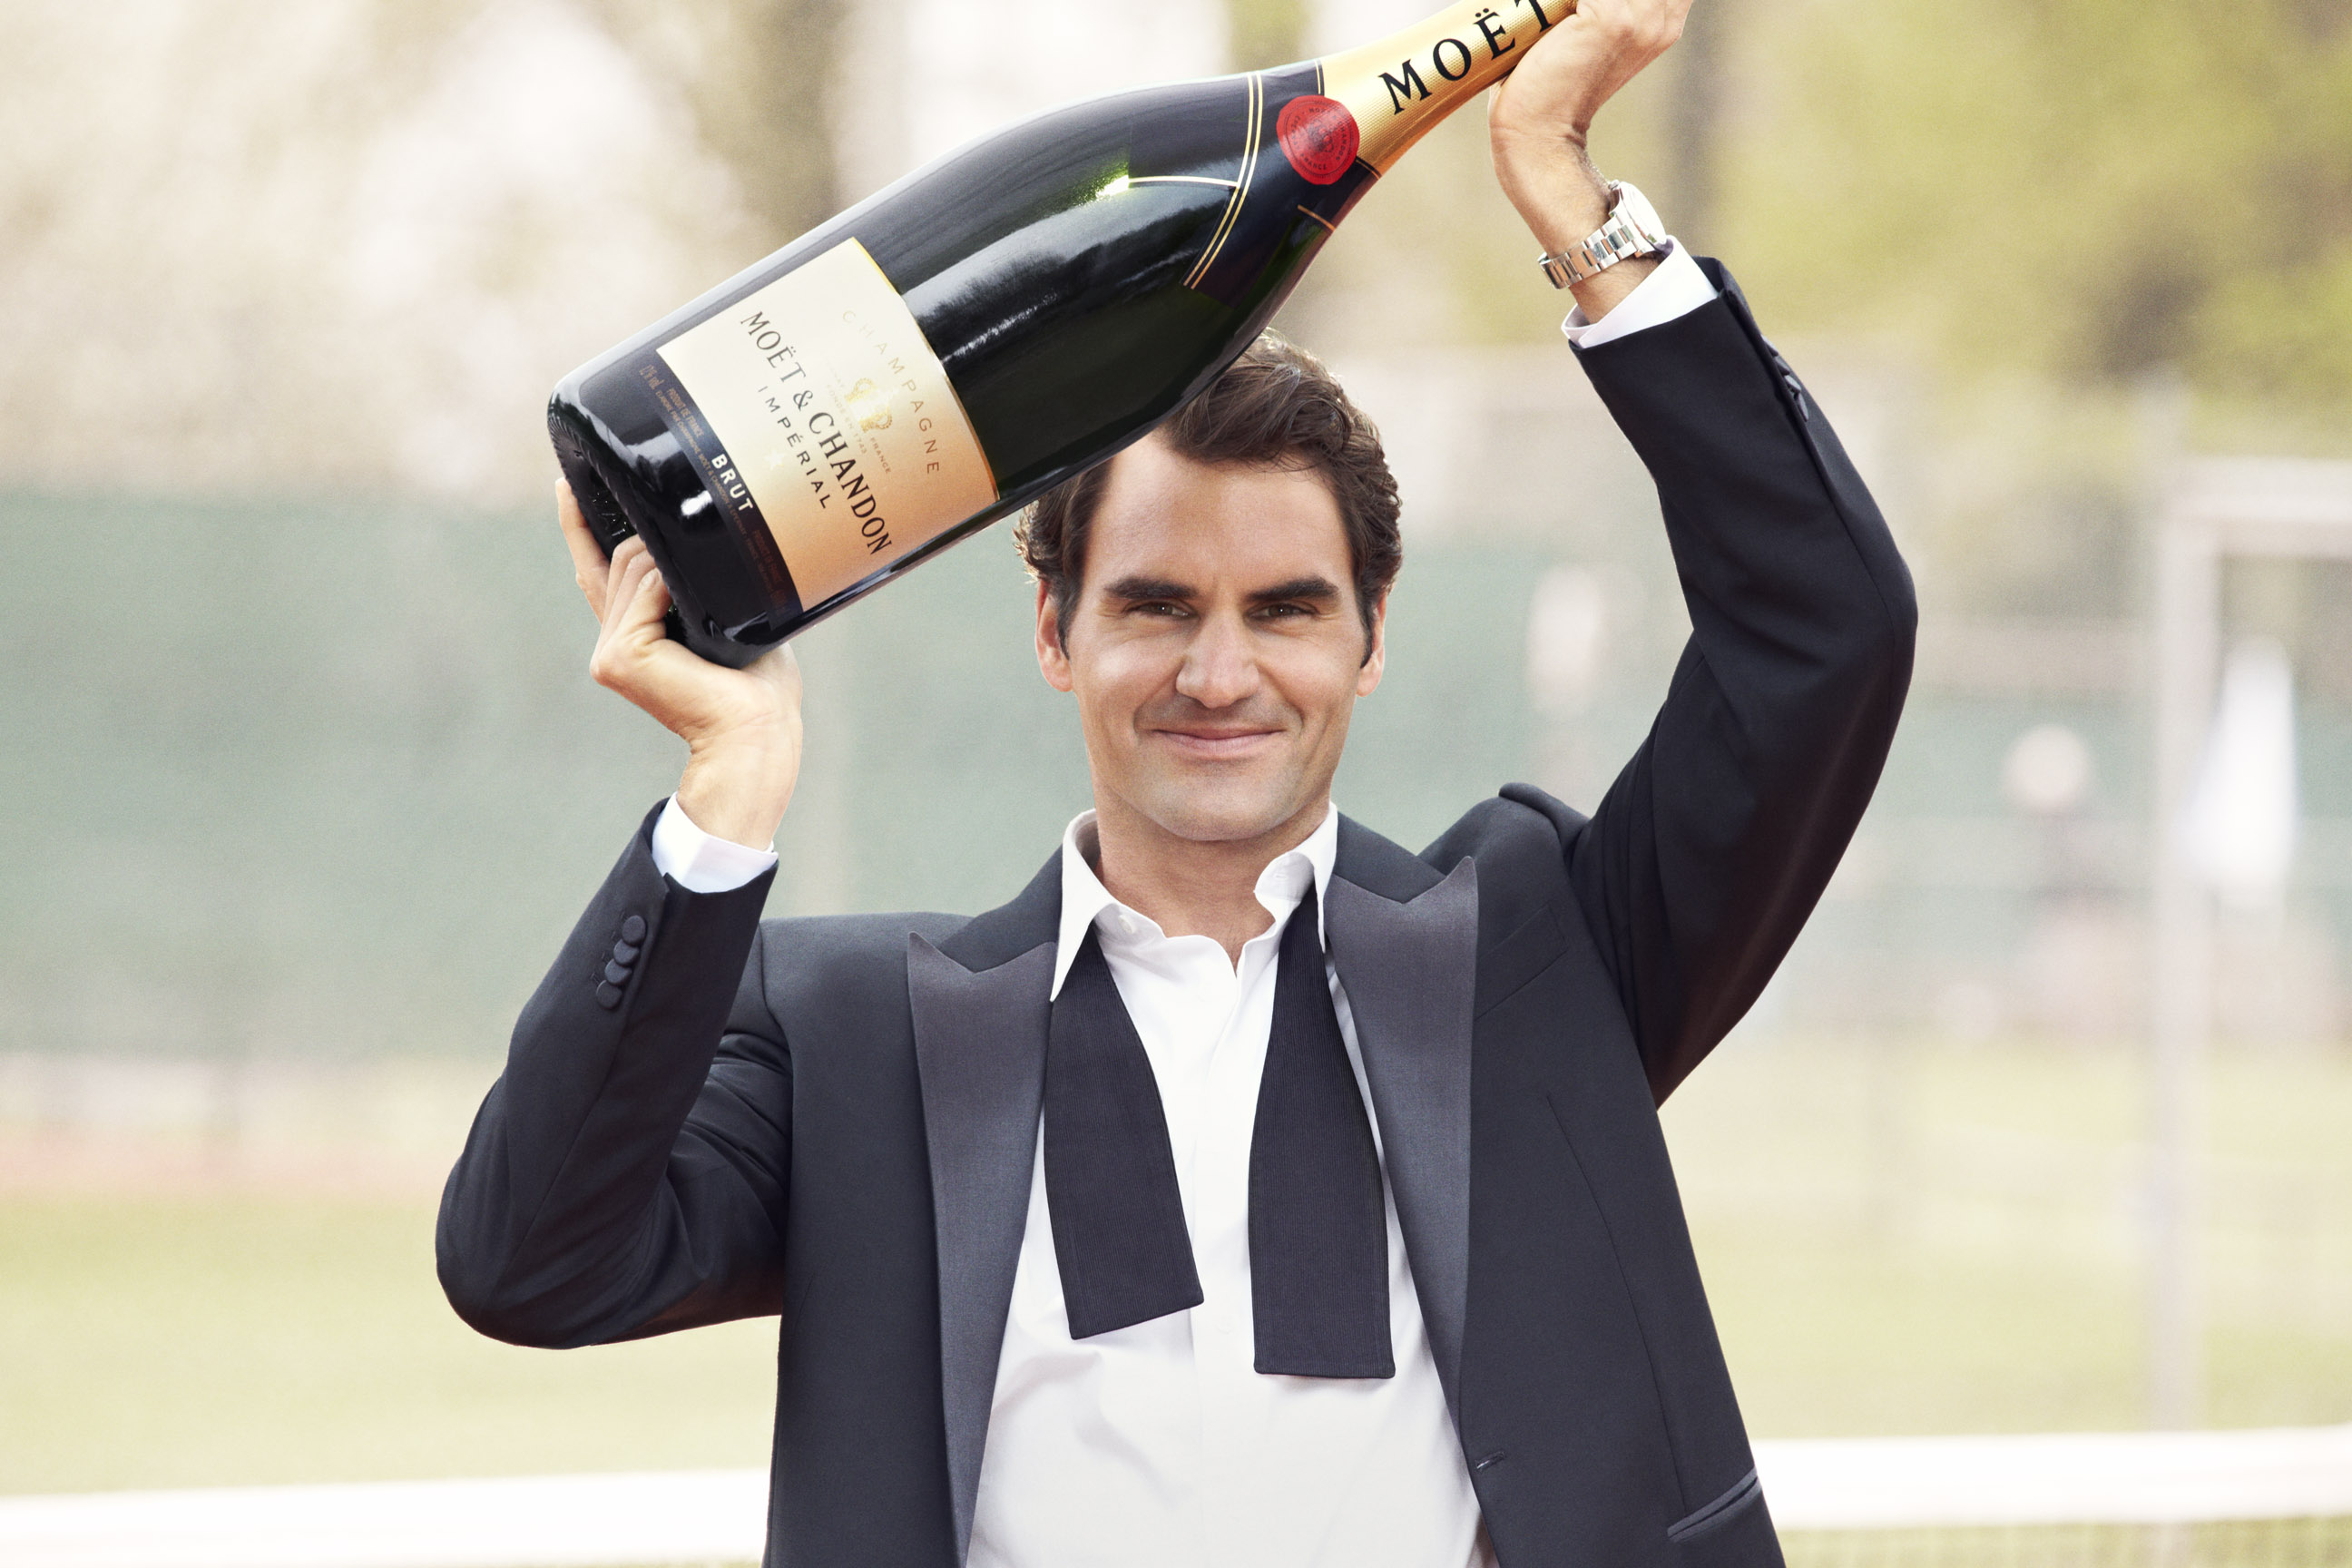 roger-federer-by-p-demarchelier-for-c2a9moc3abtchandon_1